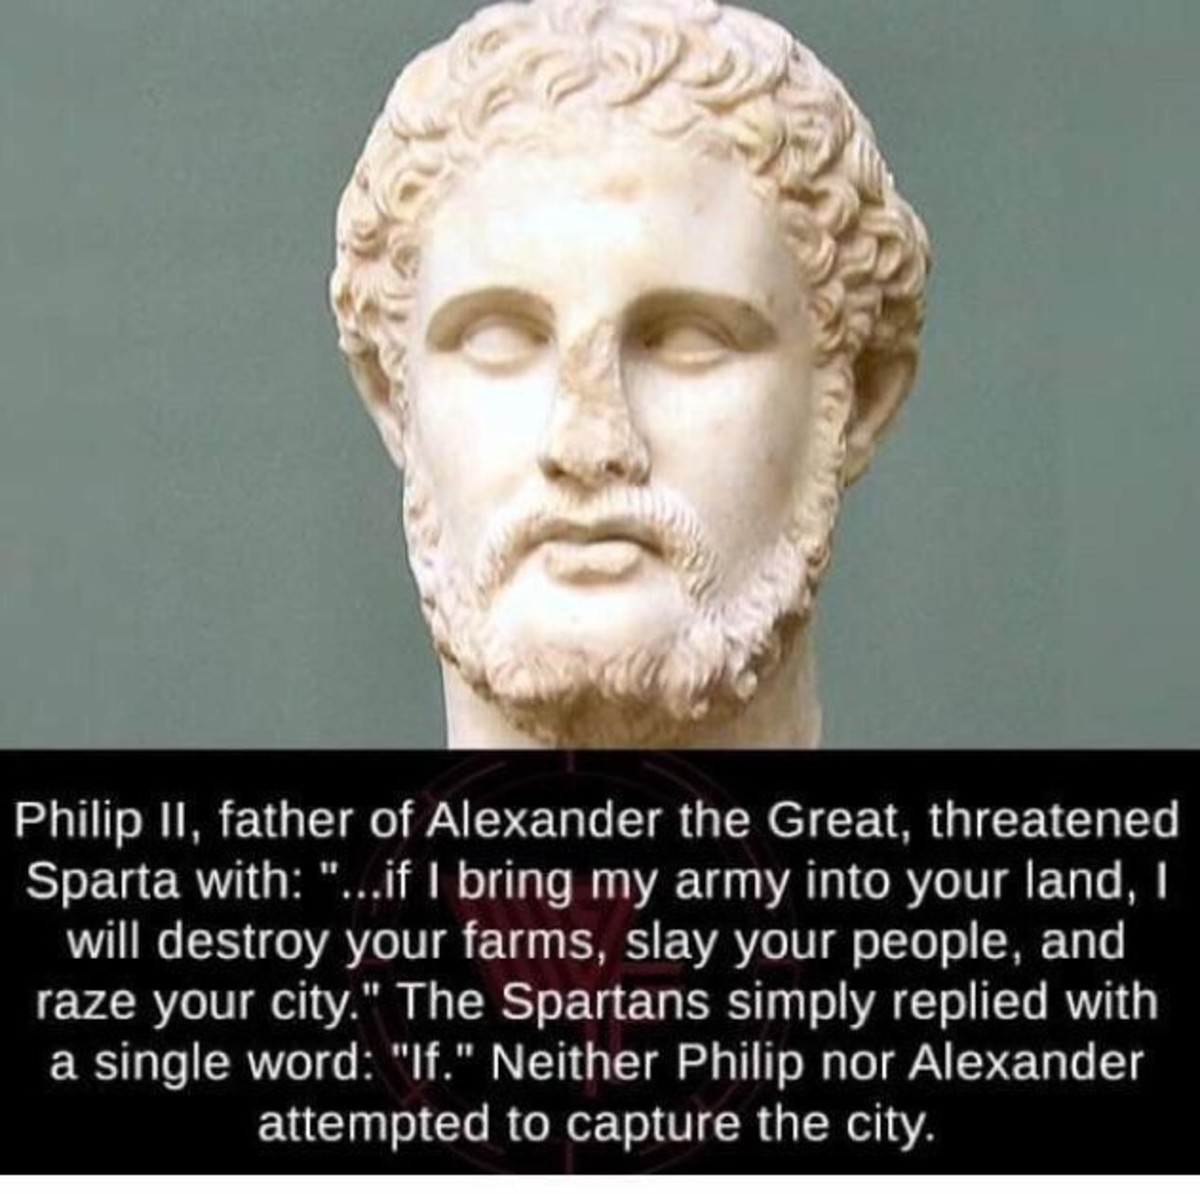 Spartans. .. Spartans were always very brief in their diplomacy. What's funny is that Phillip II tried again, this time he asked if he should come to their city as a friend